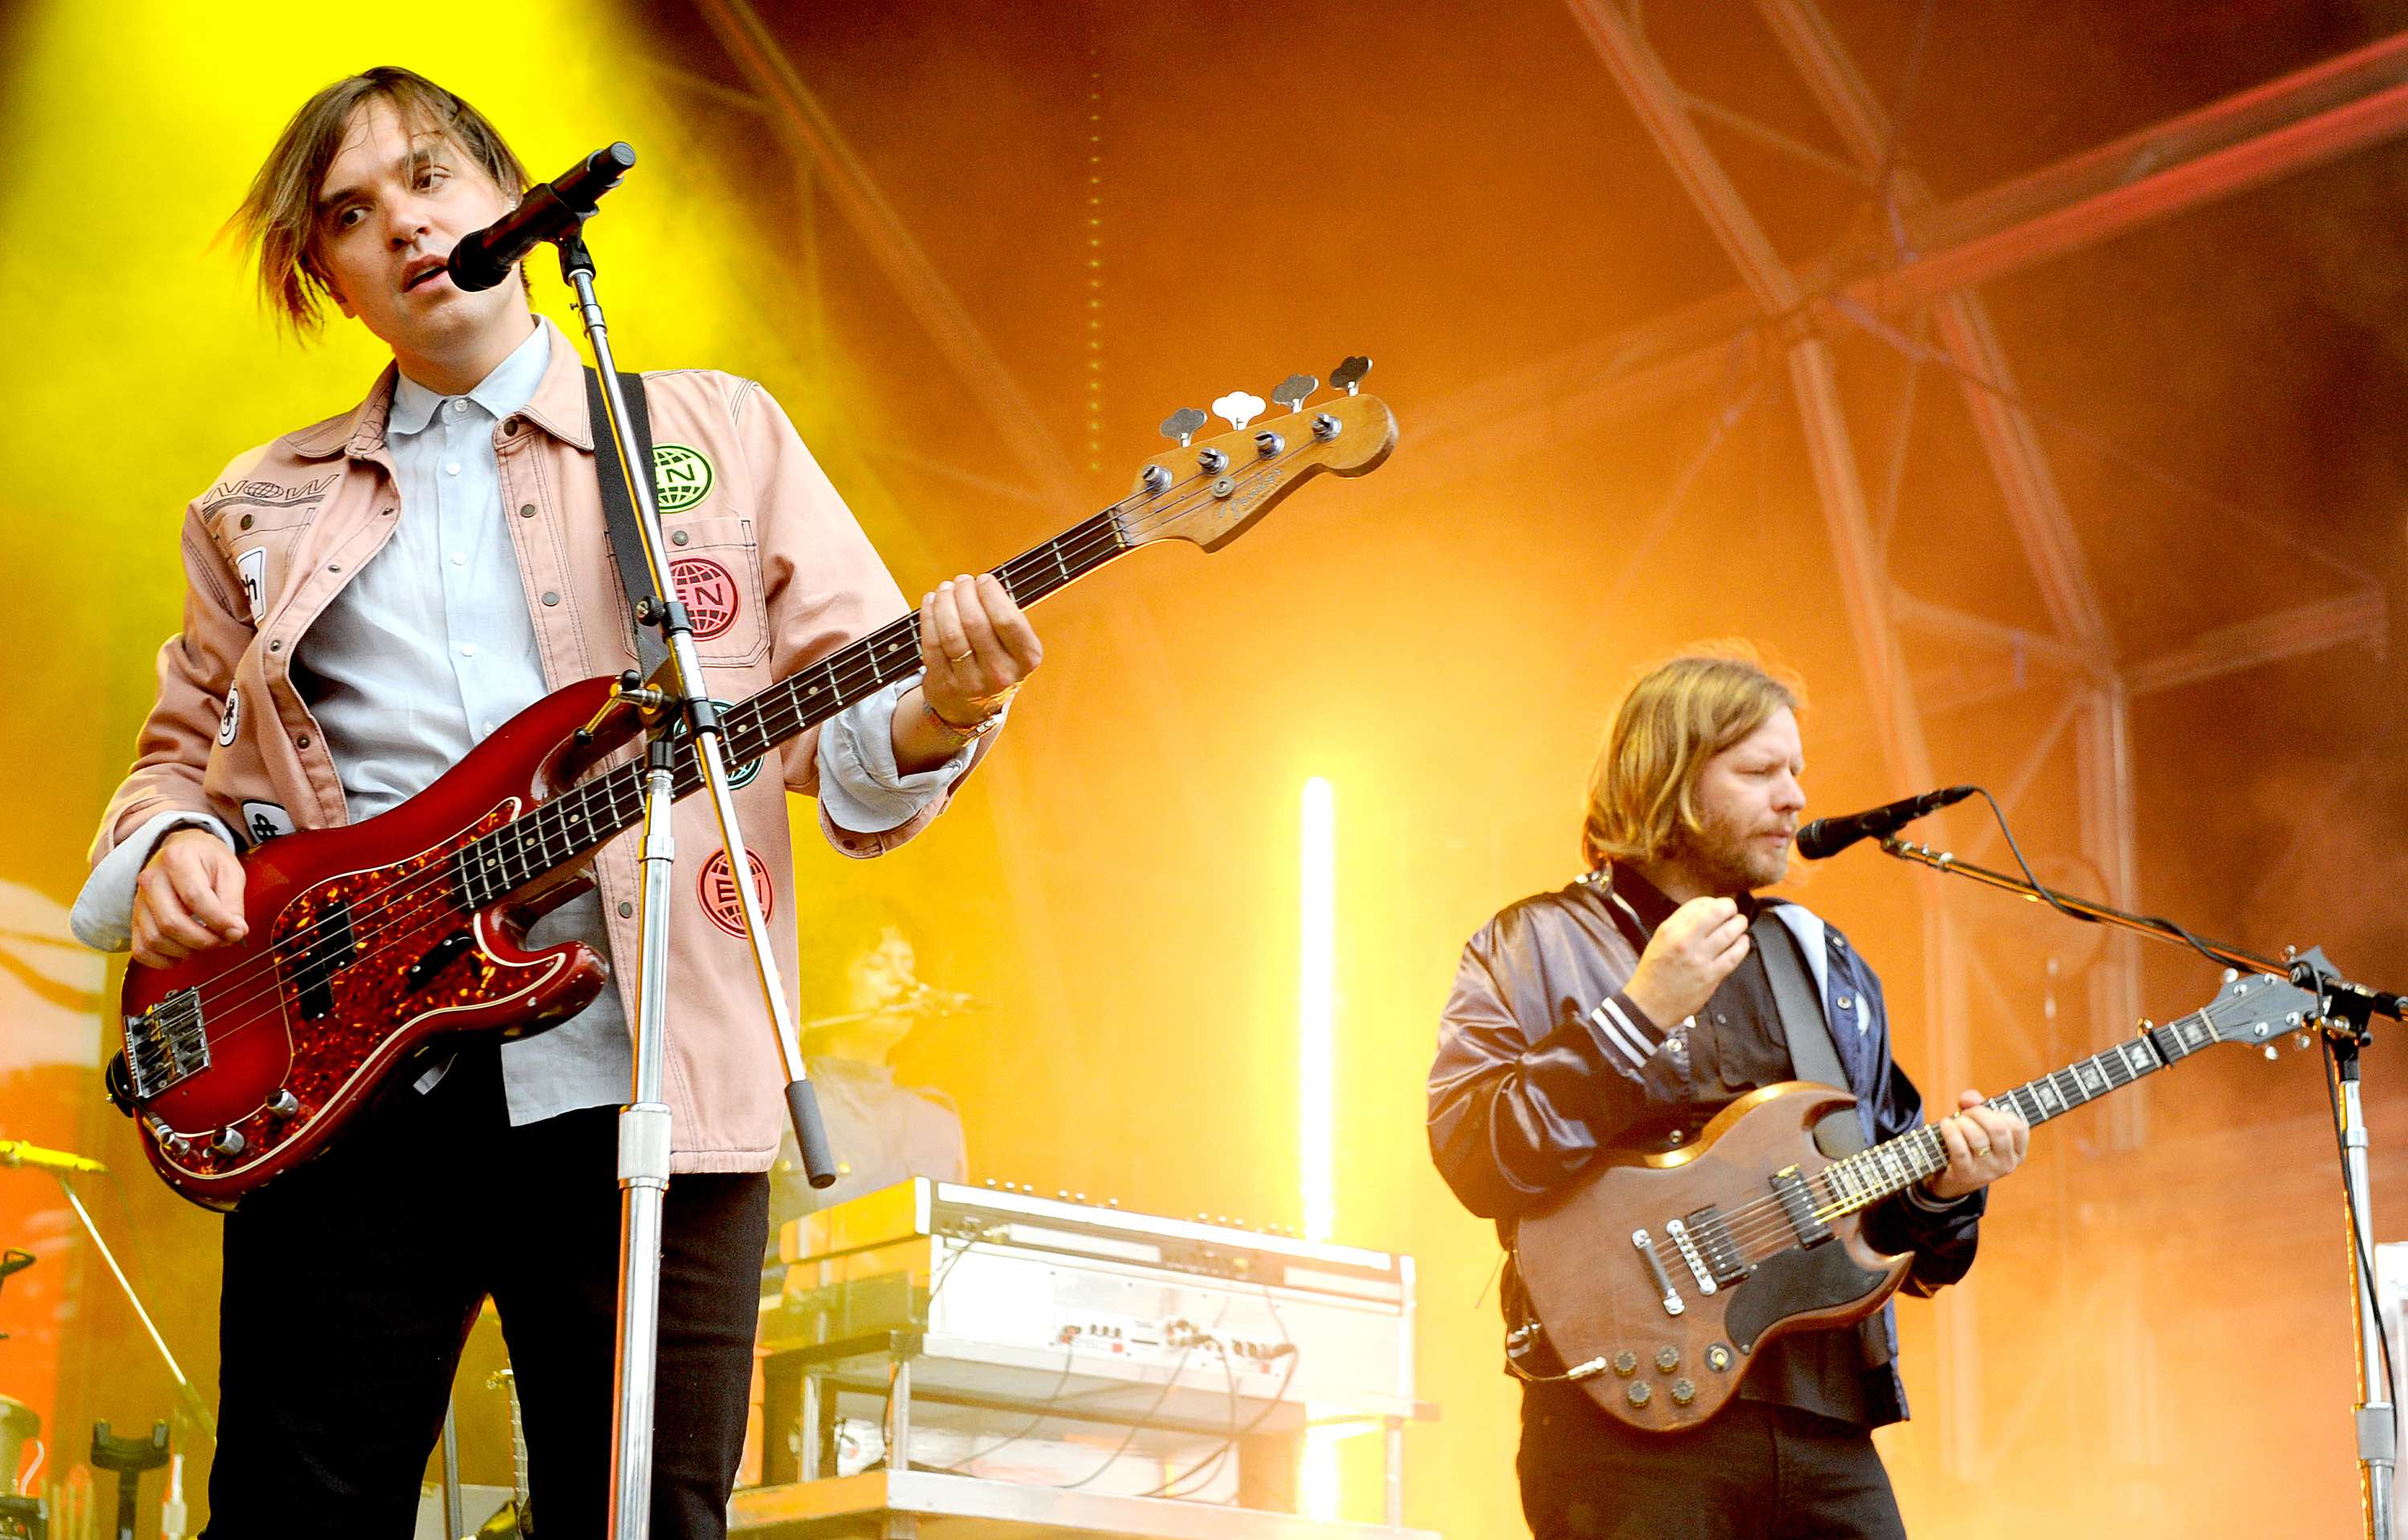 William Butler und Tim Kingsbury von Arcade Fire live in Manchester